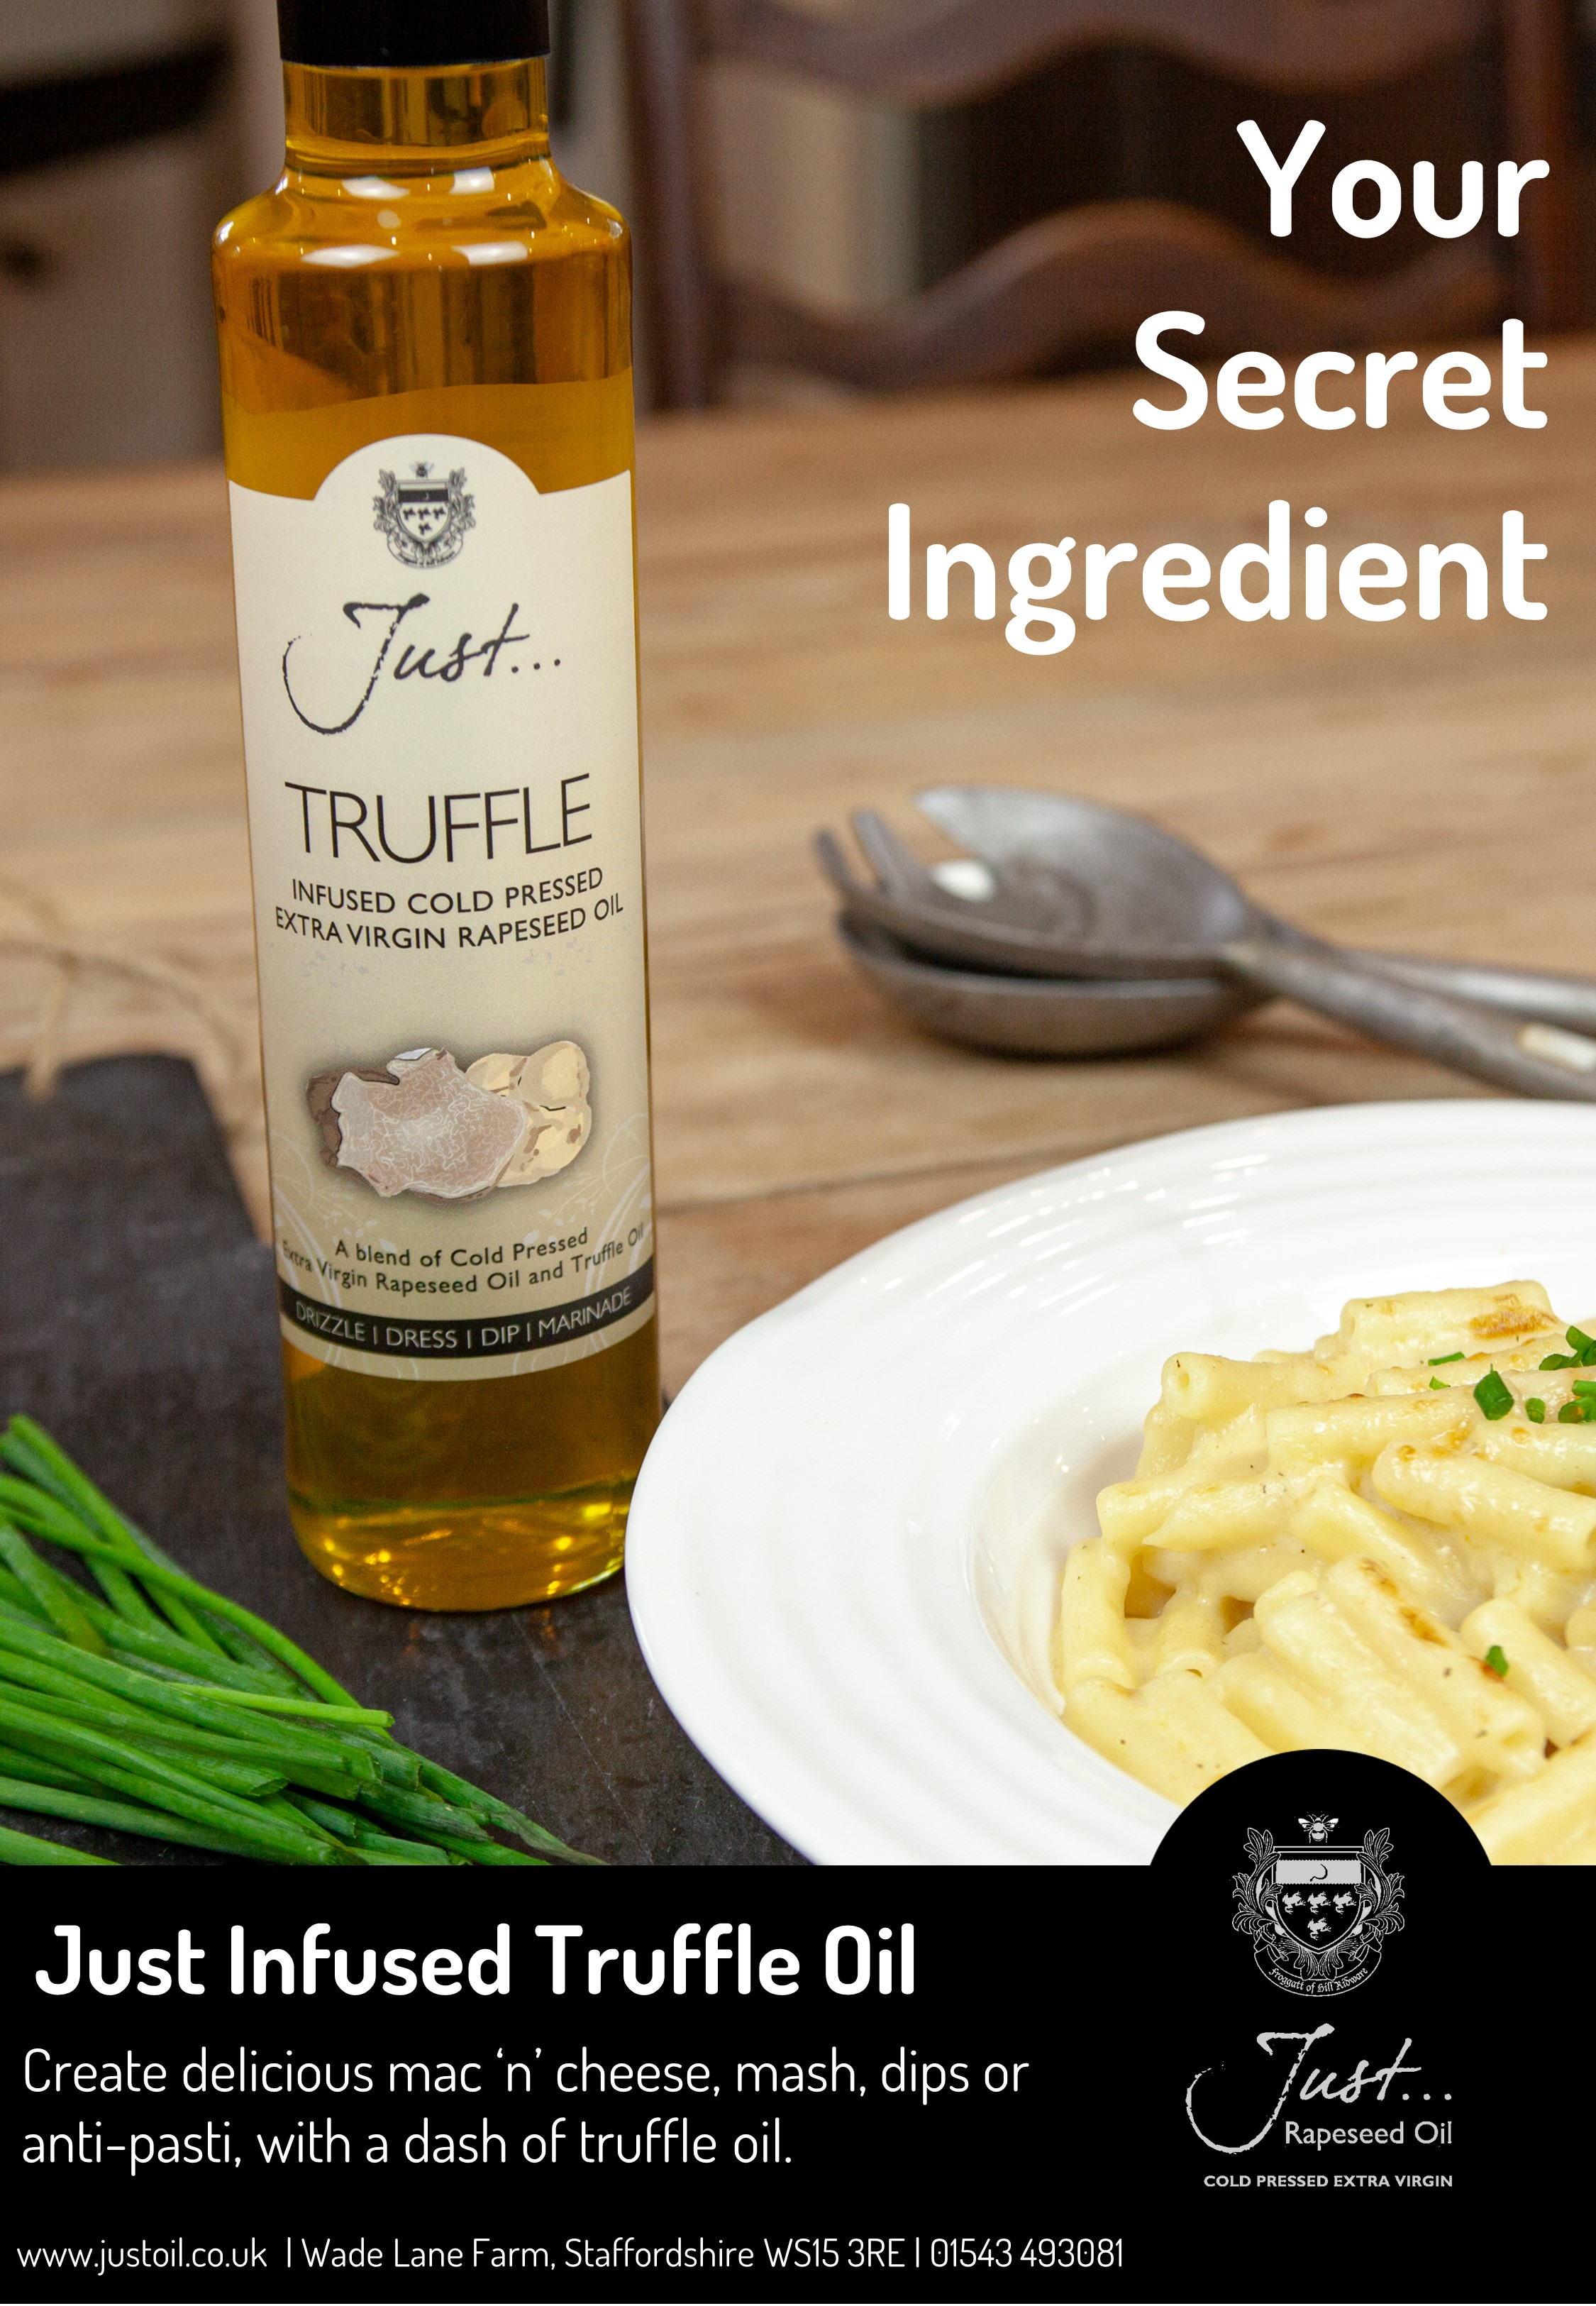 Just Truffle Infused Cold Pressed Rapeseed Oil 250ml x 6